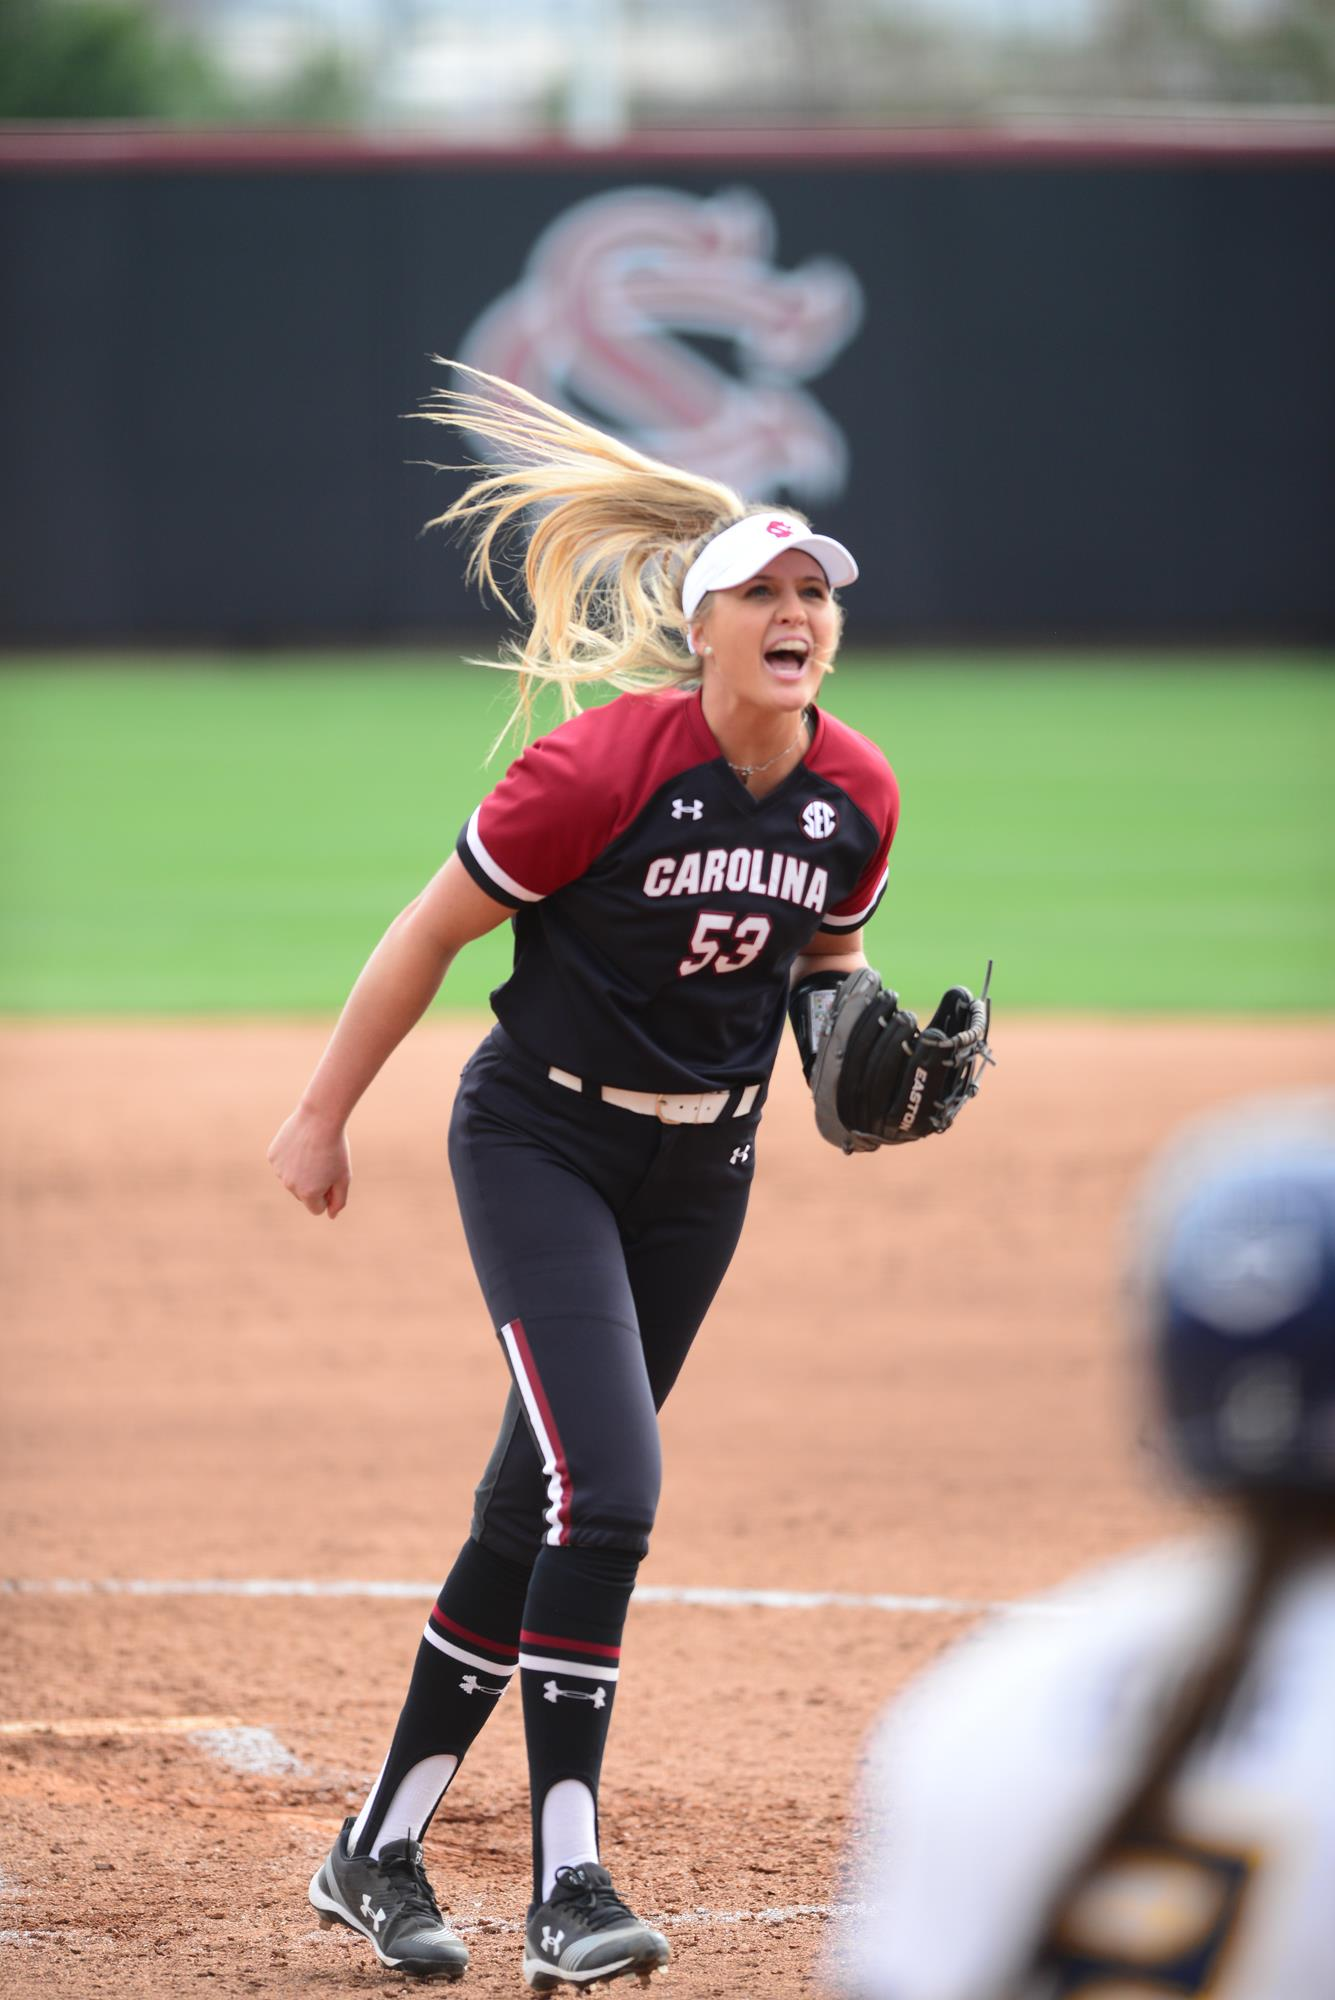 Dixie Raley - Softball - University of South Carolina Athletics